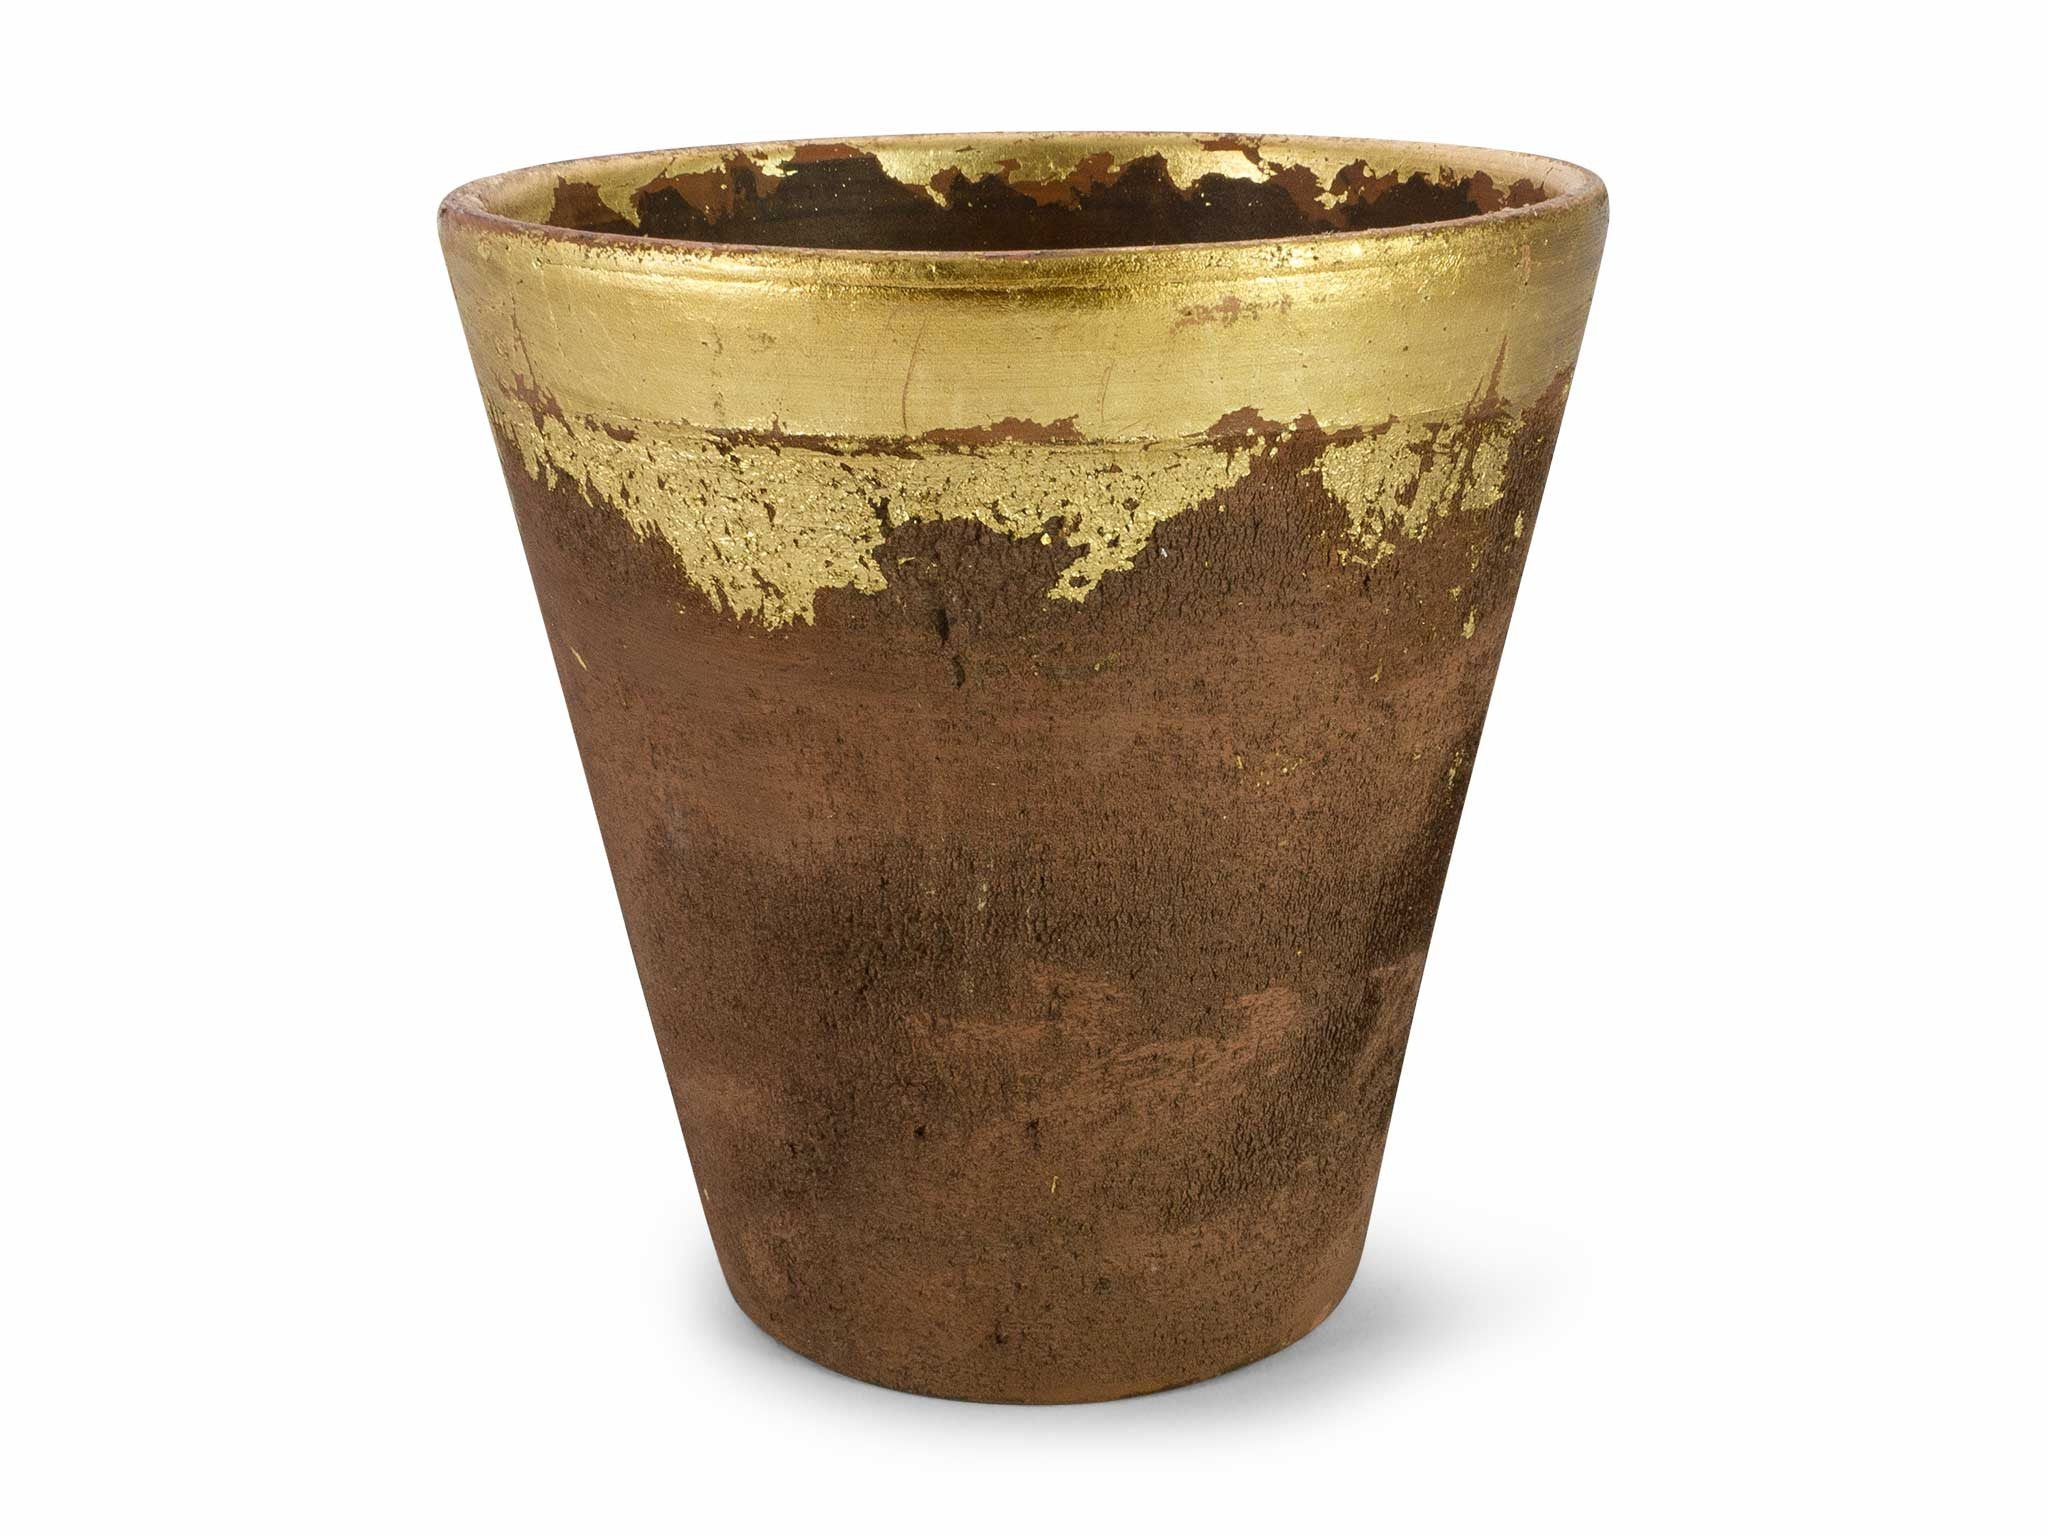 Lagos Gold Pot. Buy Modern Pots For Plants   Affordable Decorative Planters Online